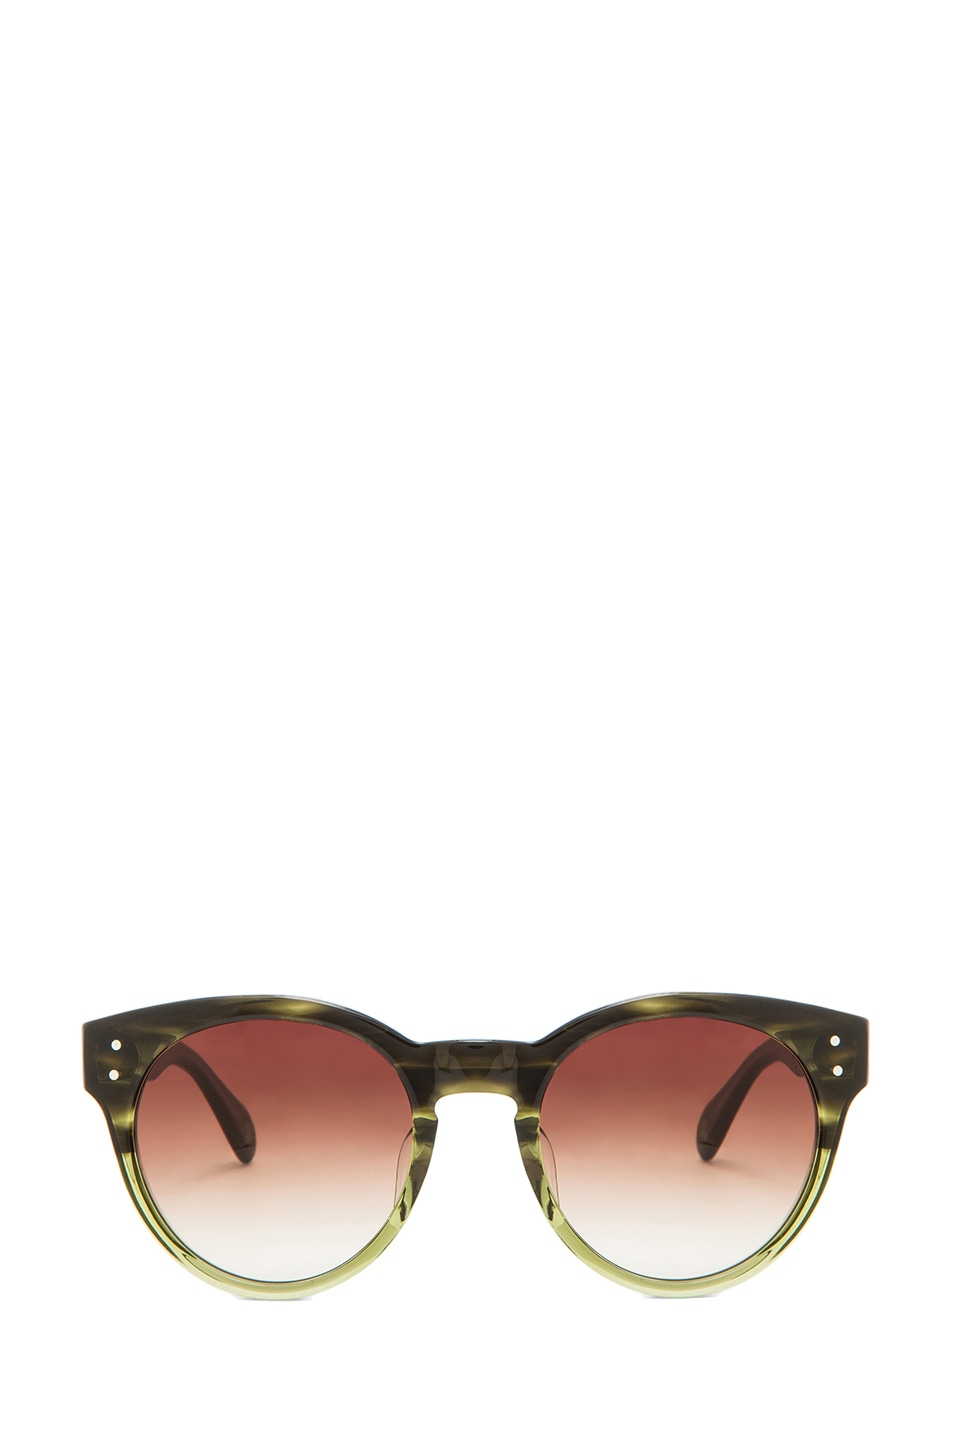 Image 1 of Oliver Peoples for Maison Kitsune Paris Sunglasses in Military